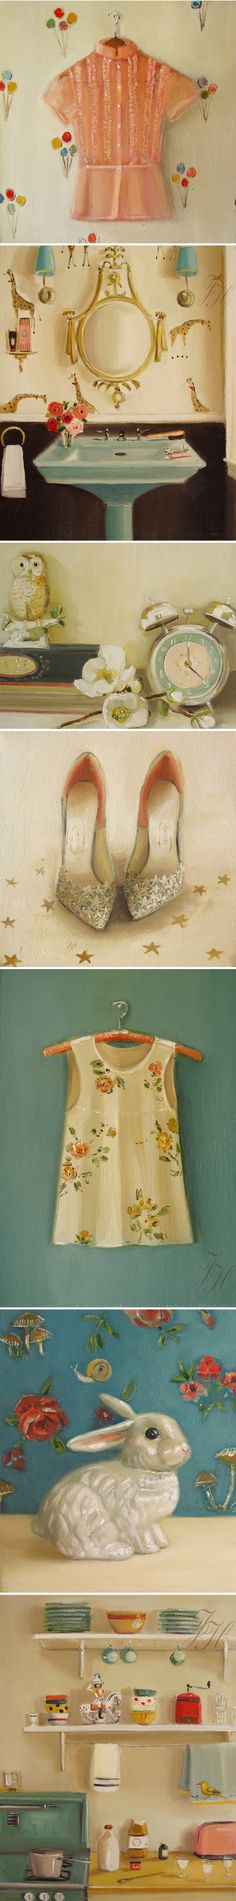 nostalgic paintings by janet hill <3. from the small image I thought these were photos!